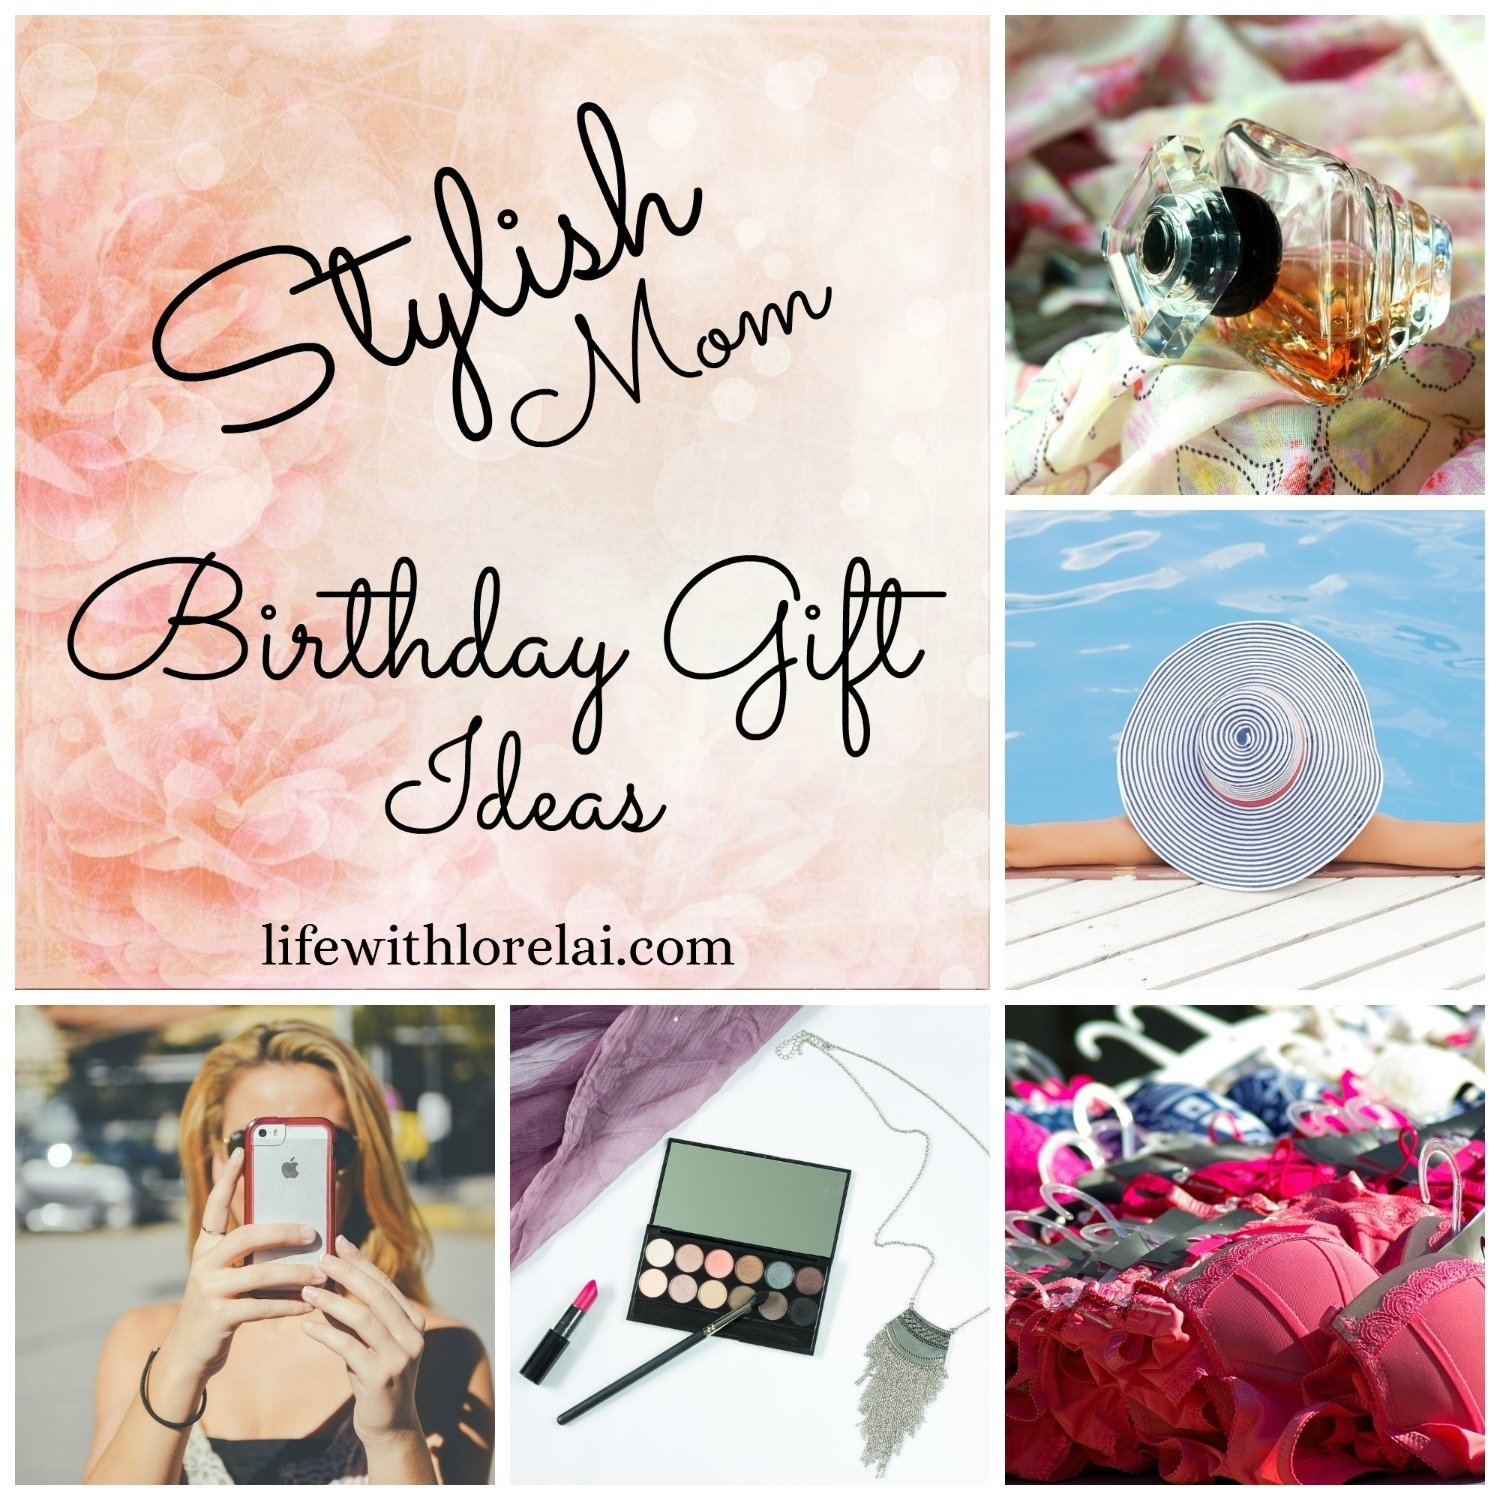 10 Unique Gift Ideas For Moms Birthday The Stylish Mom Life With